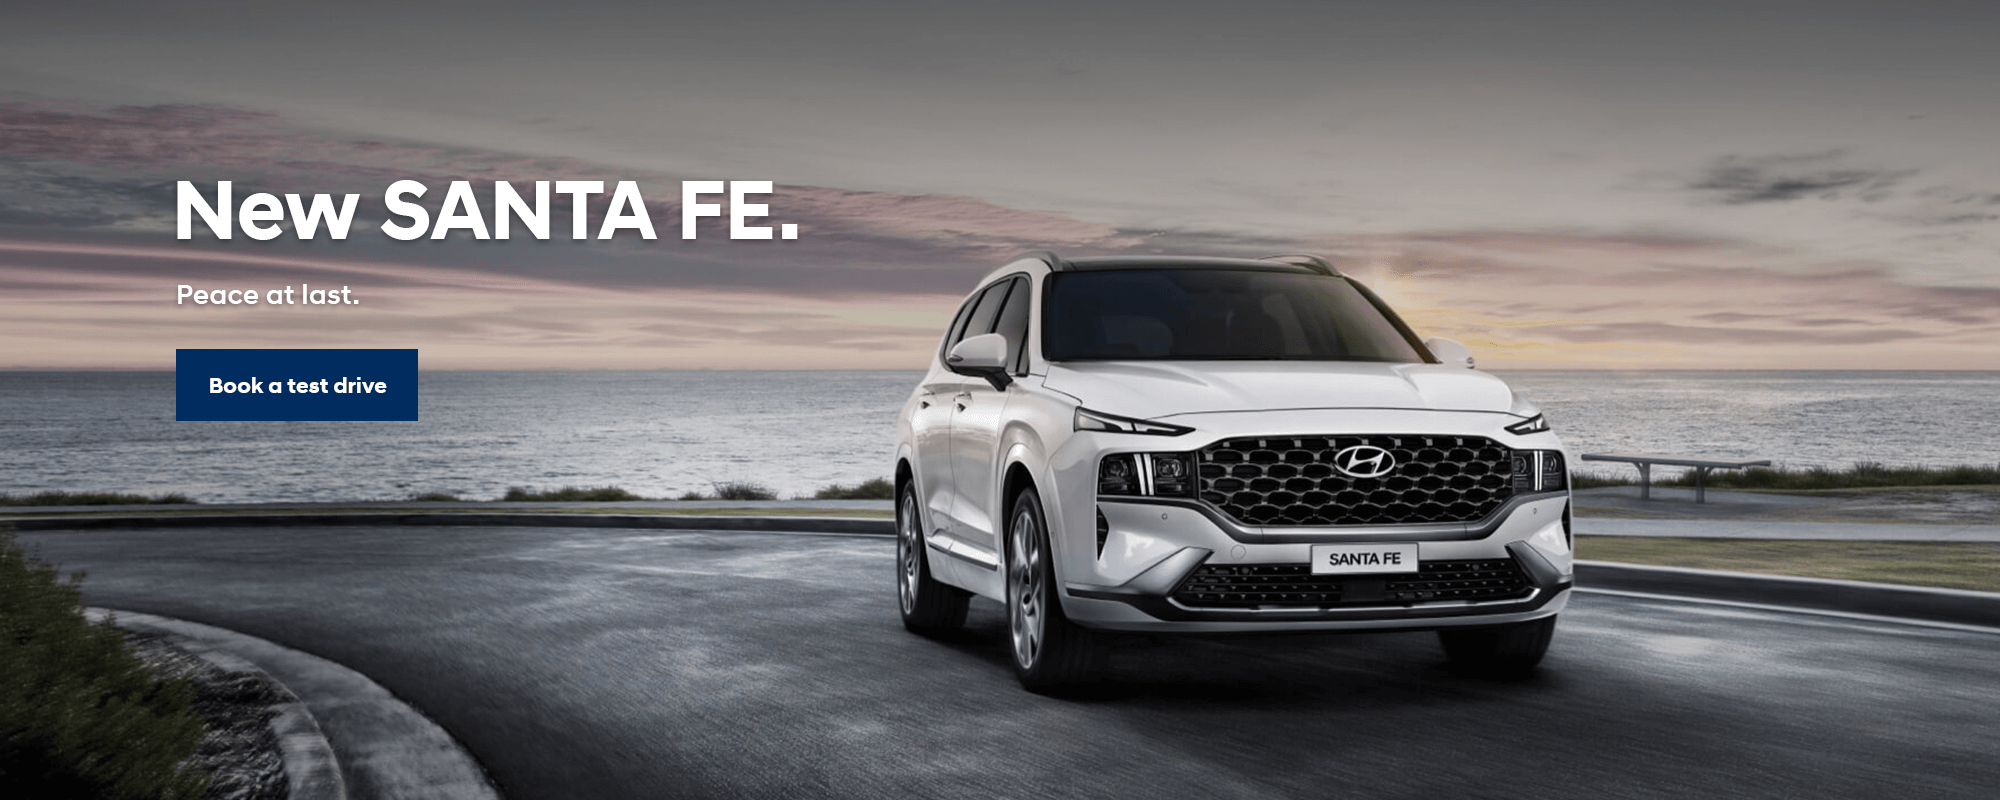 The All-New Hyundai SANTA FE. Peace at last.